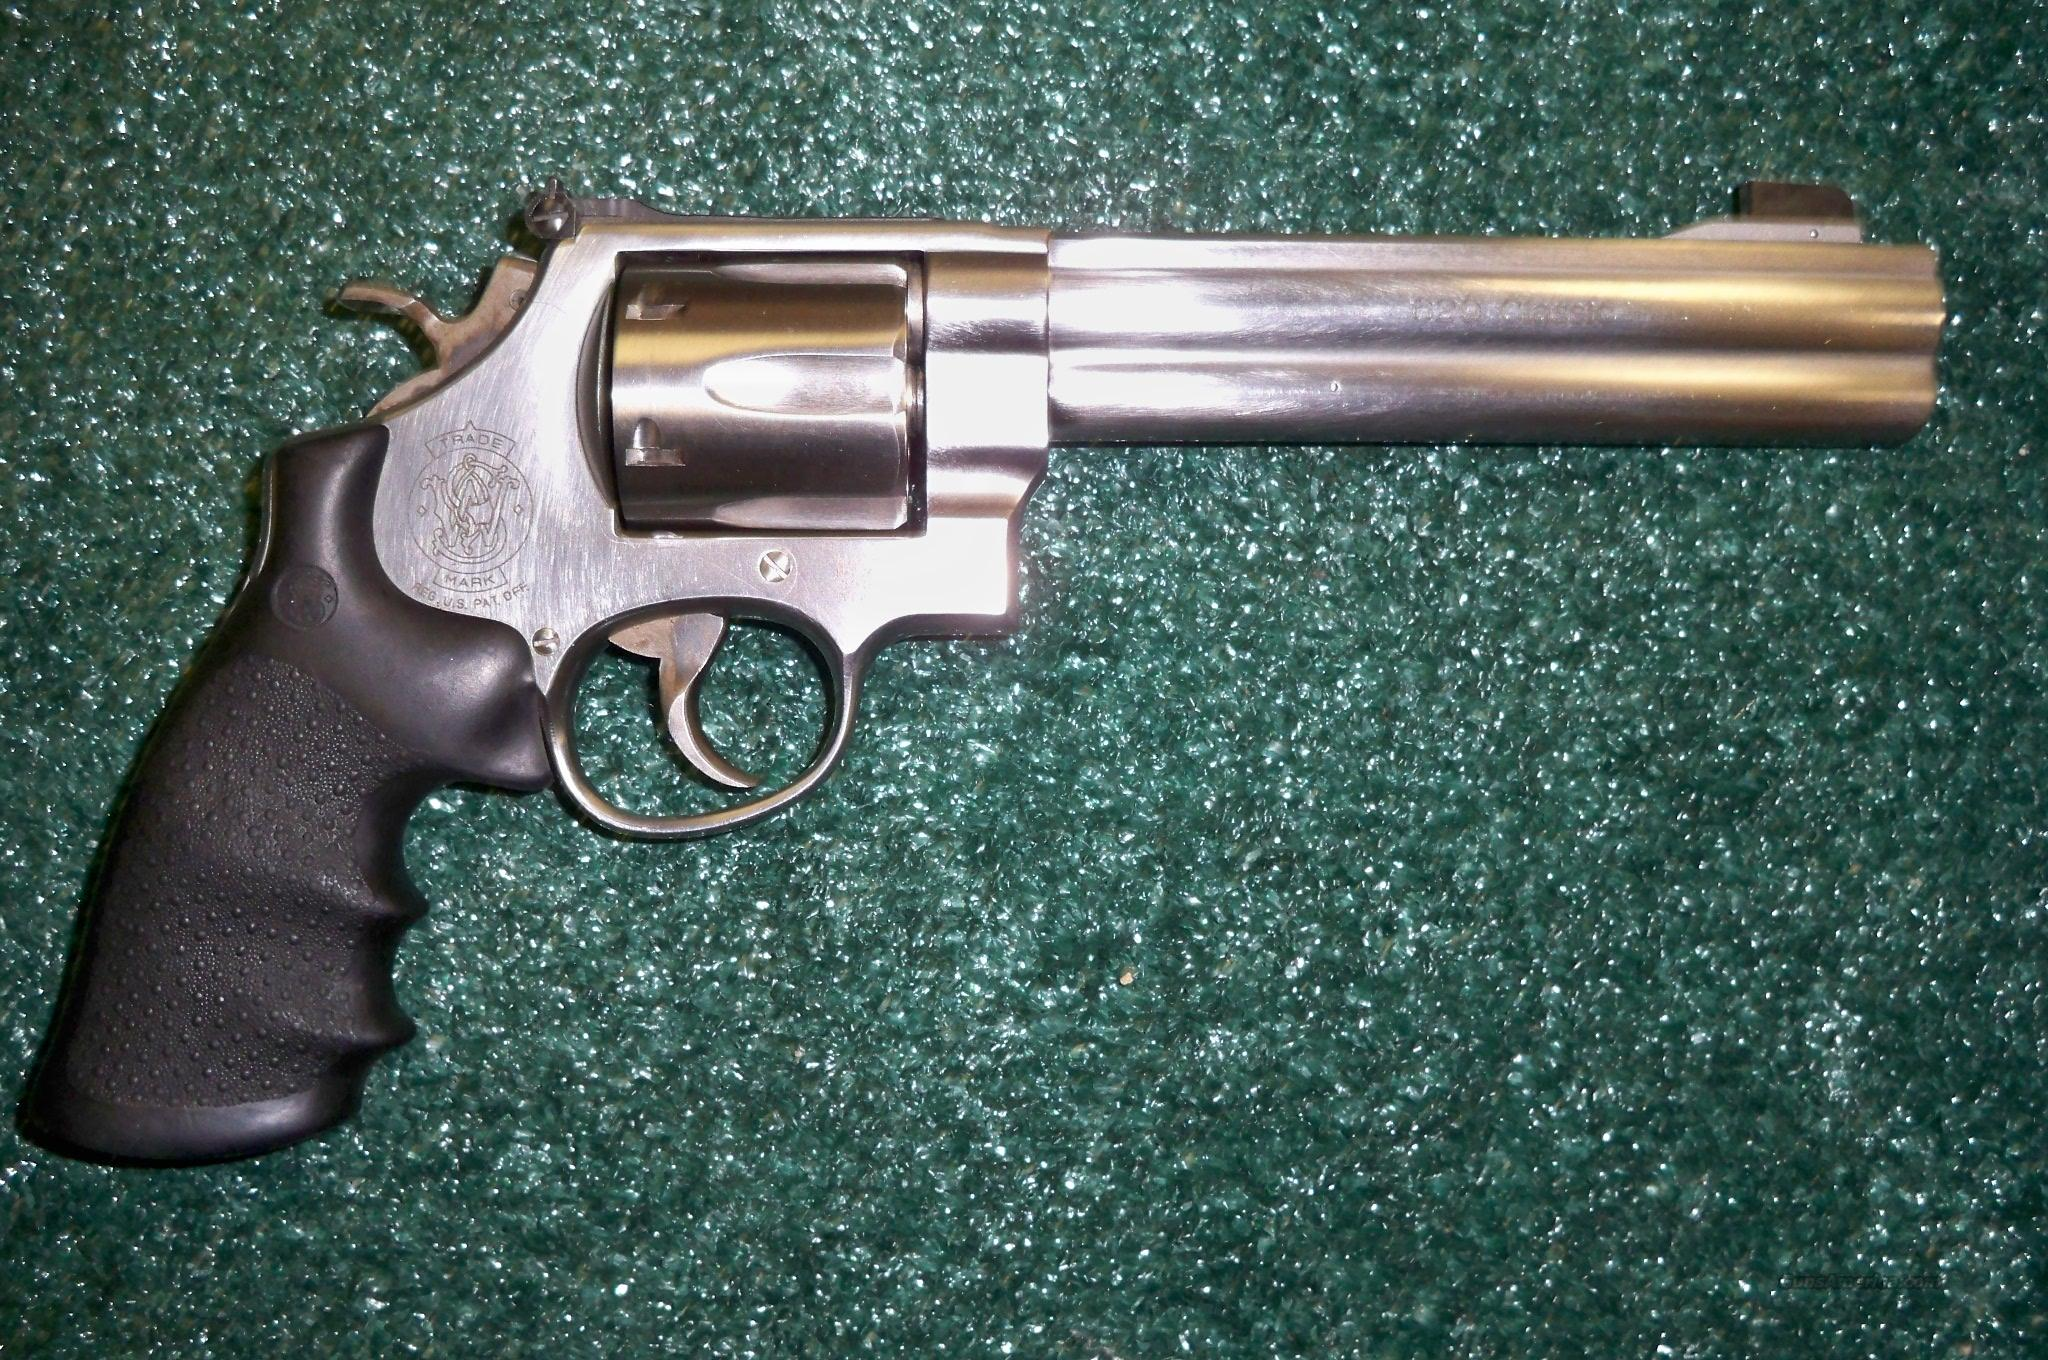 Smith & Wesson 629 Classic .44 Magnum Revolver  Guns > Pistols > Smith & Wesson Revolvers > Model 629